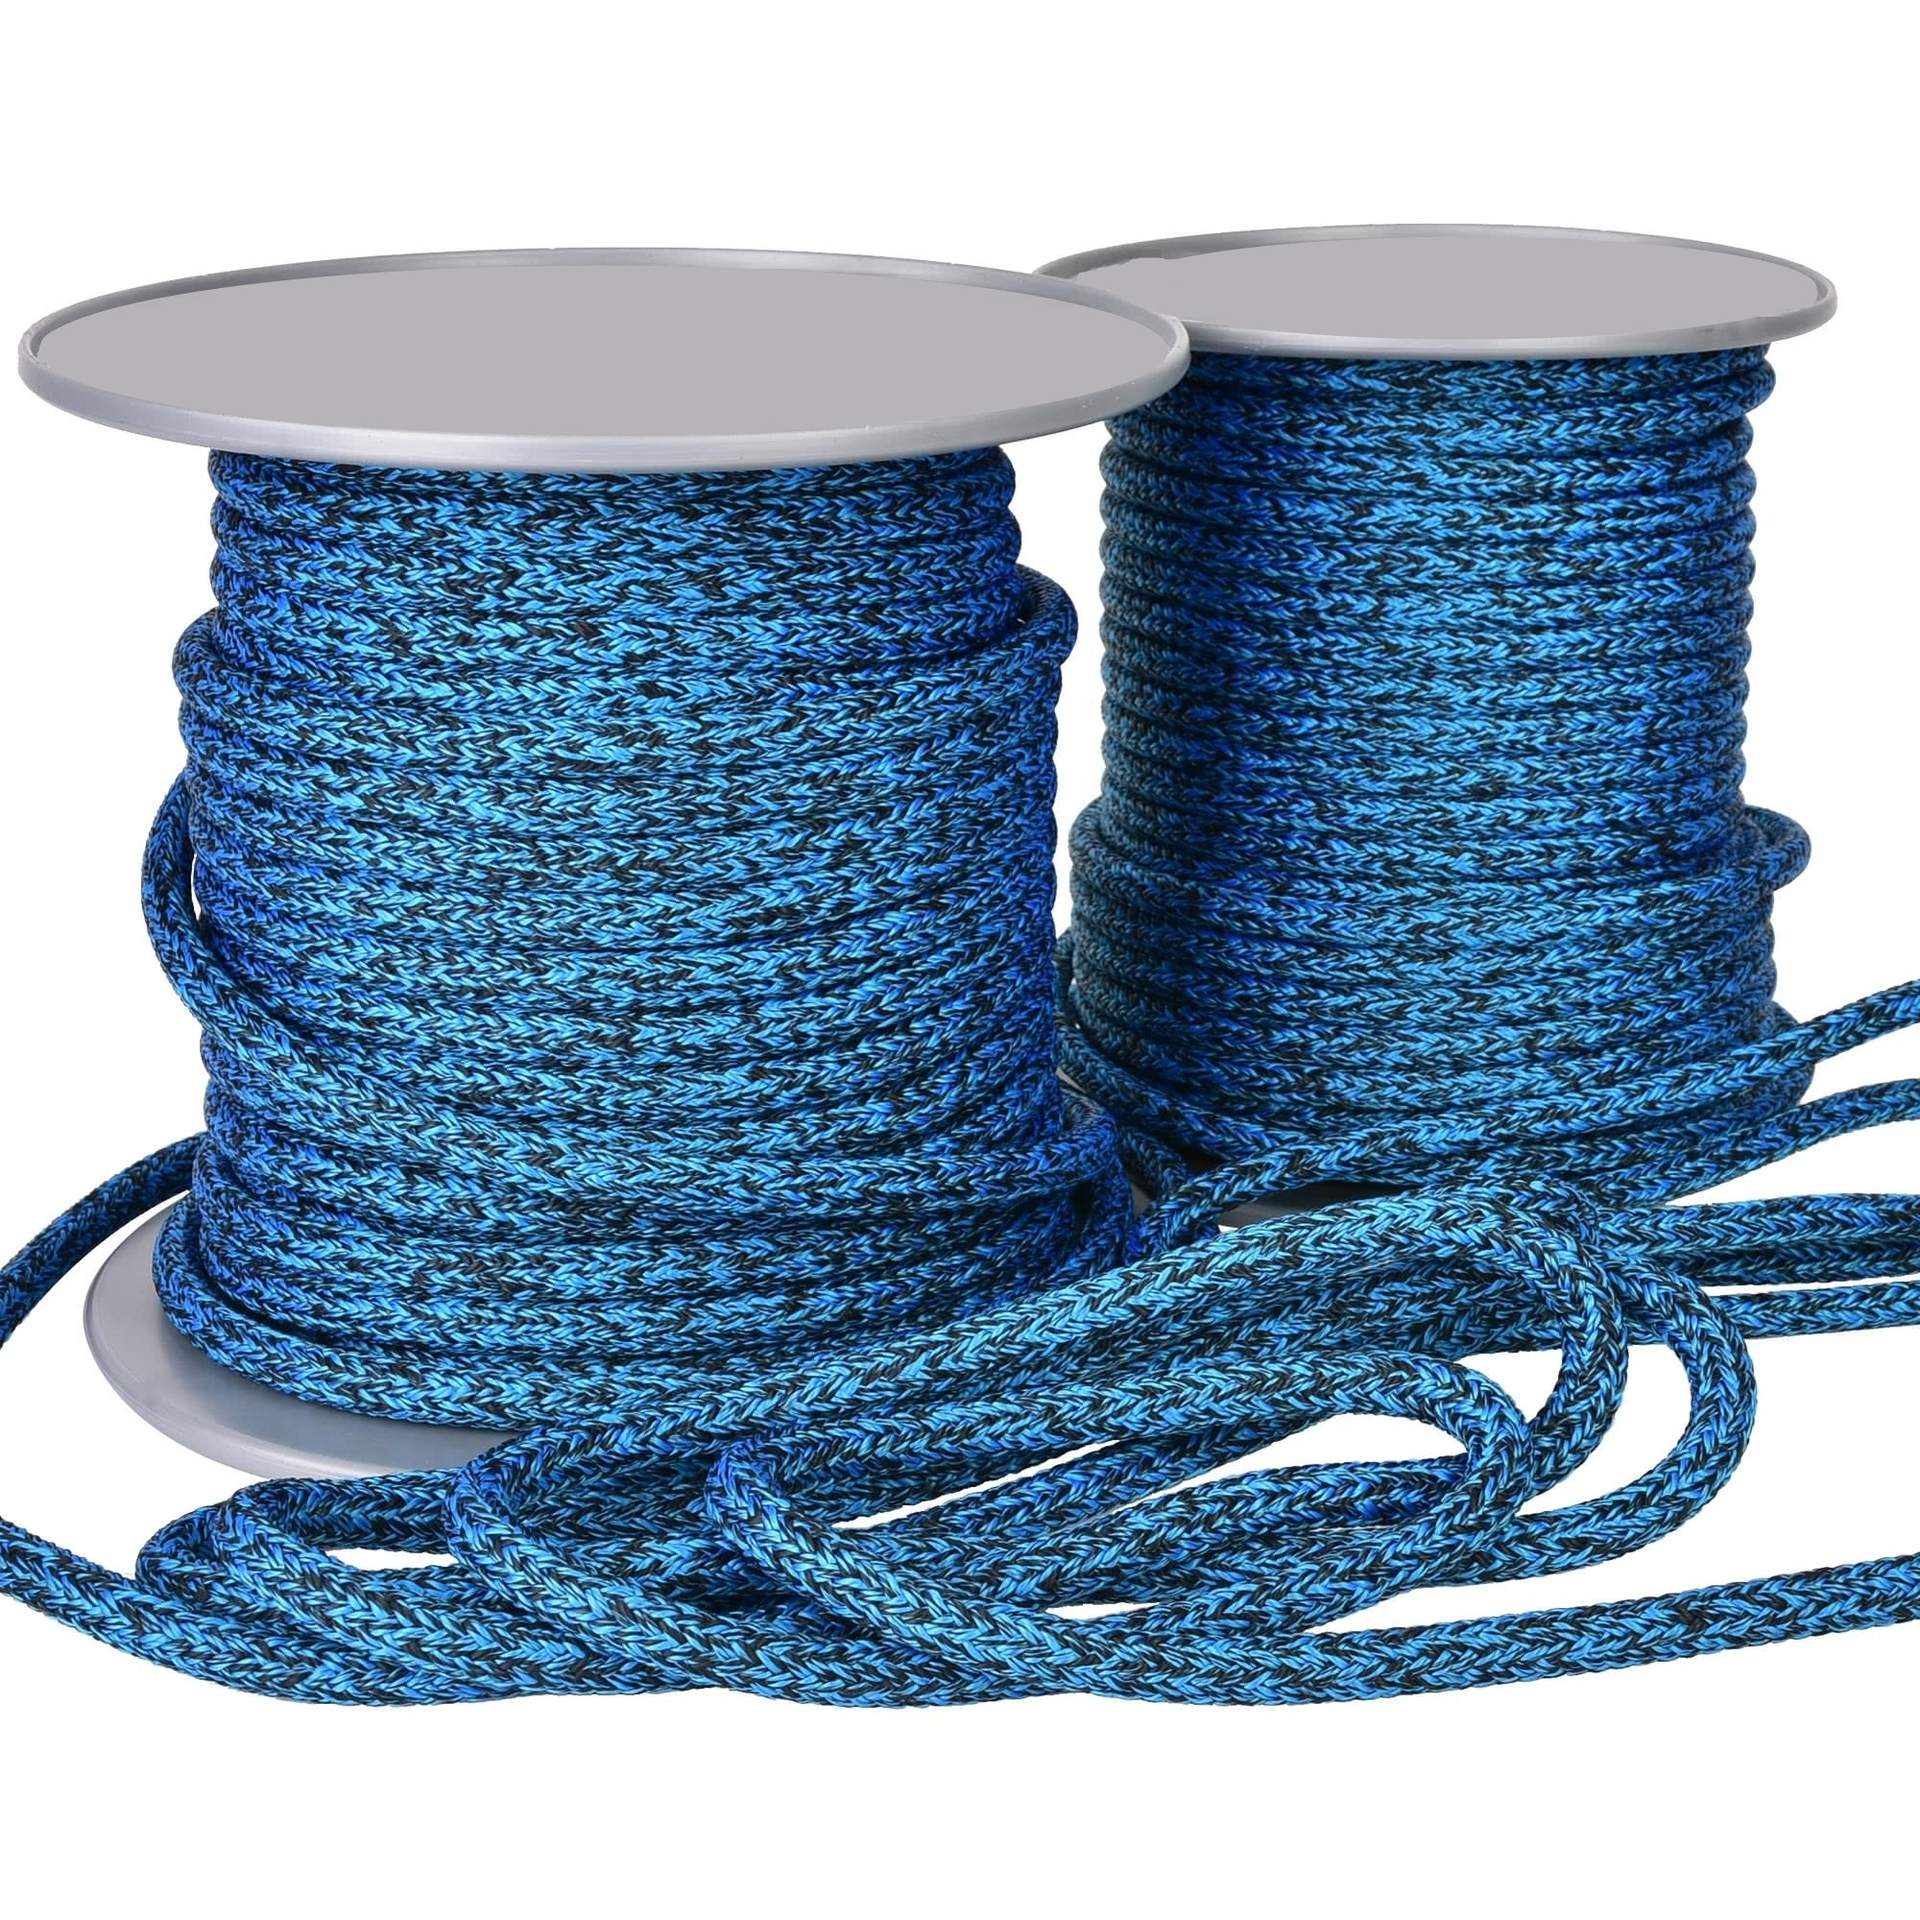 High quality customized package and size 16/ 32/ 48 strand braided sailing rope for sailboat, yacht marine rope